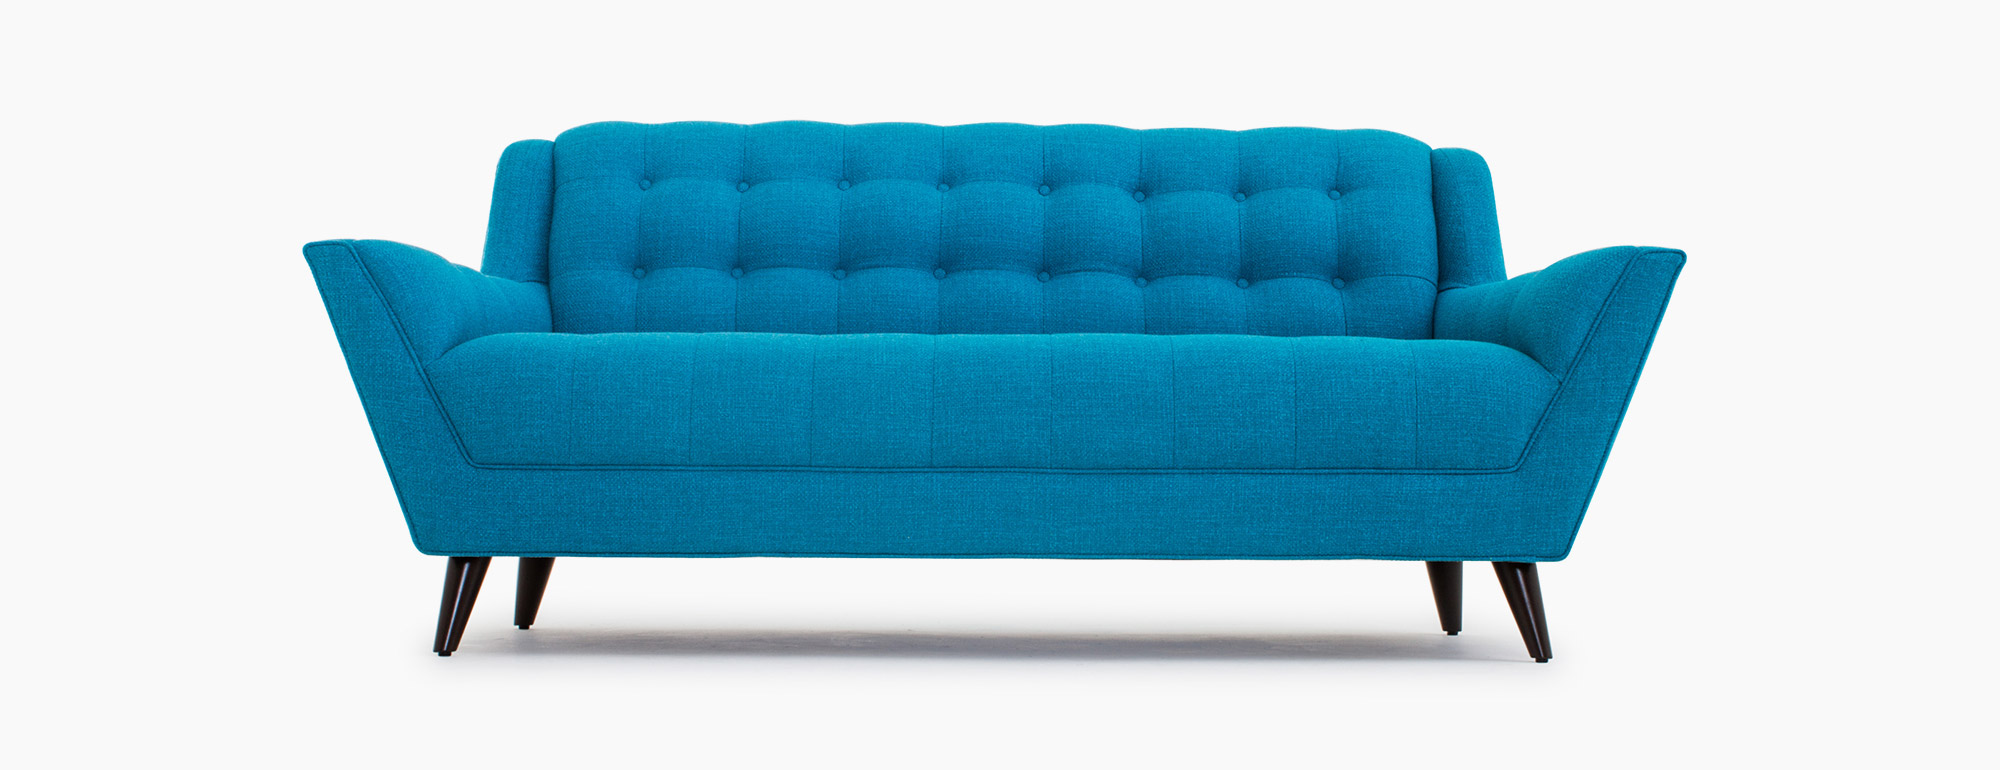 hero-fitzgerald-loveseat-1